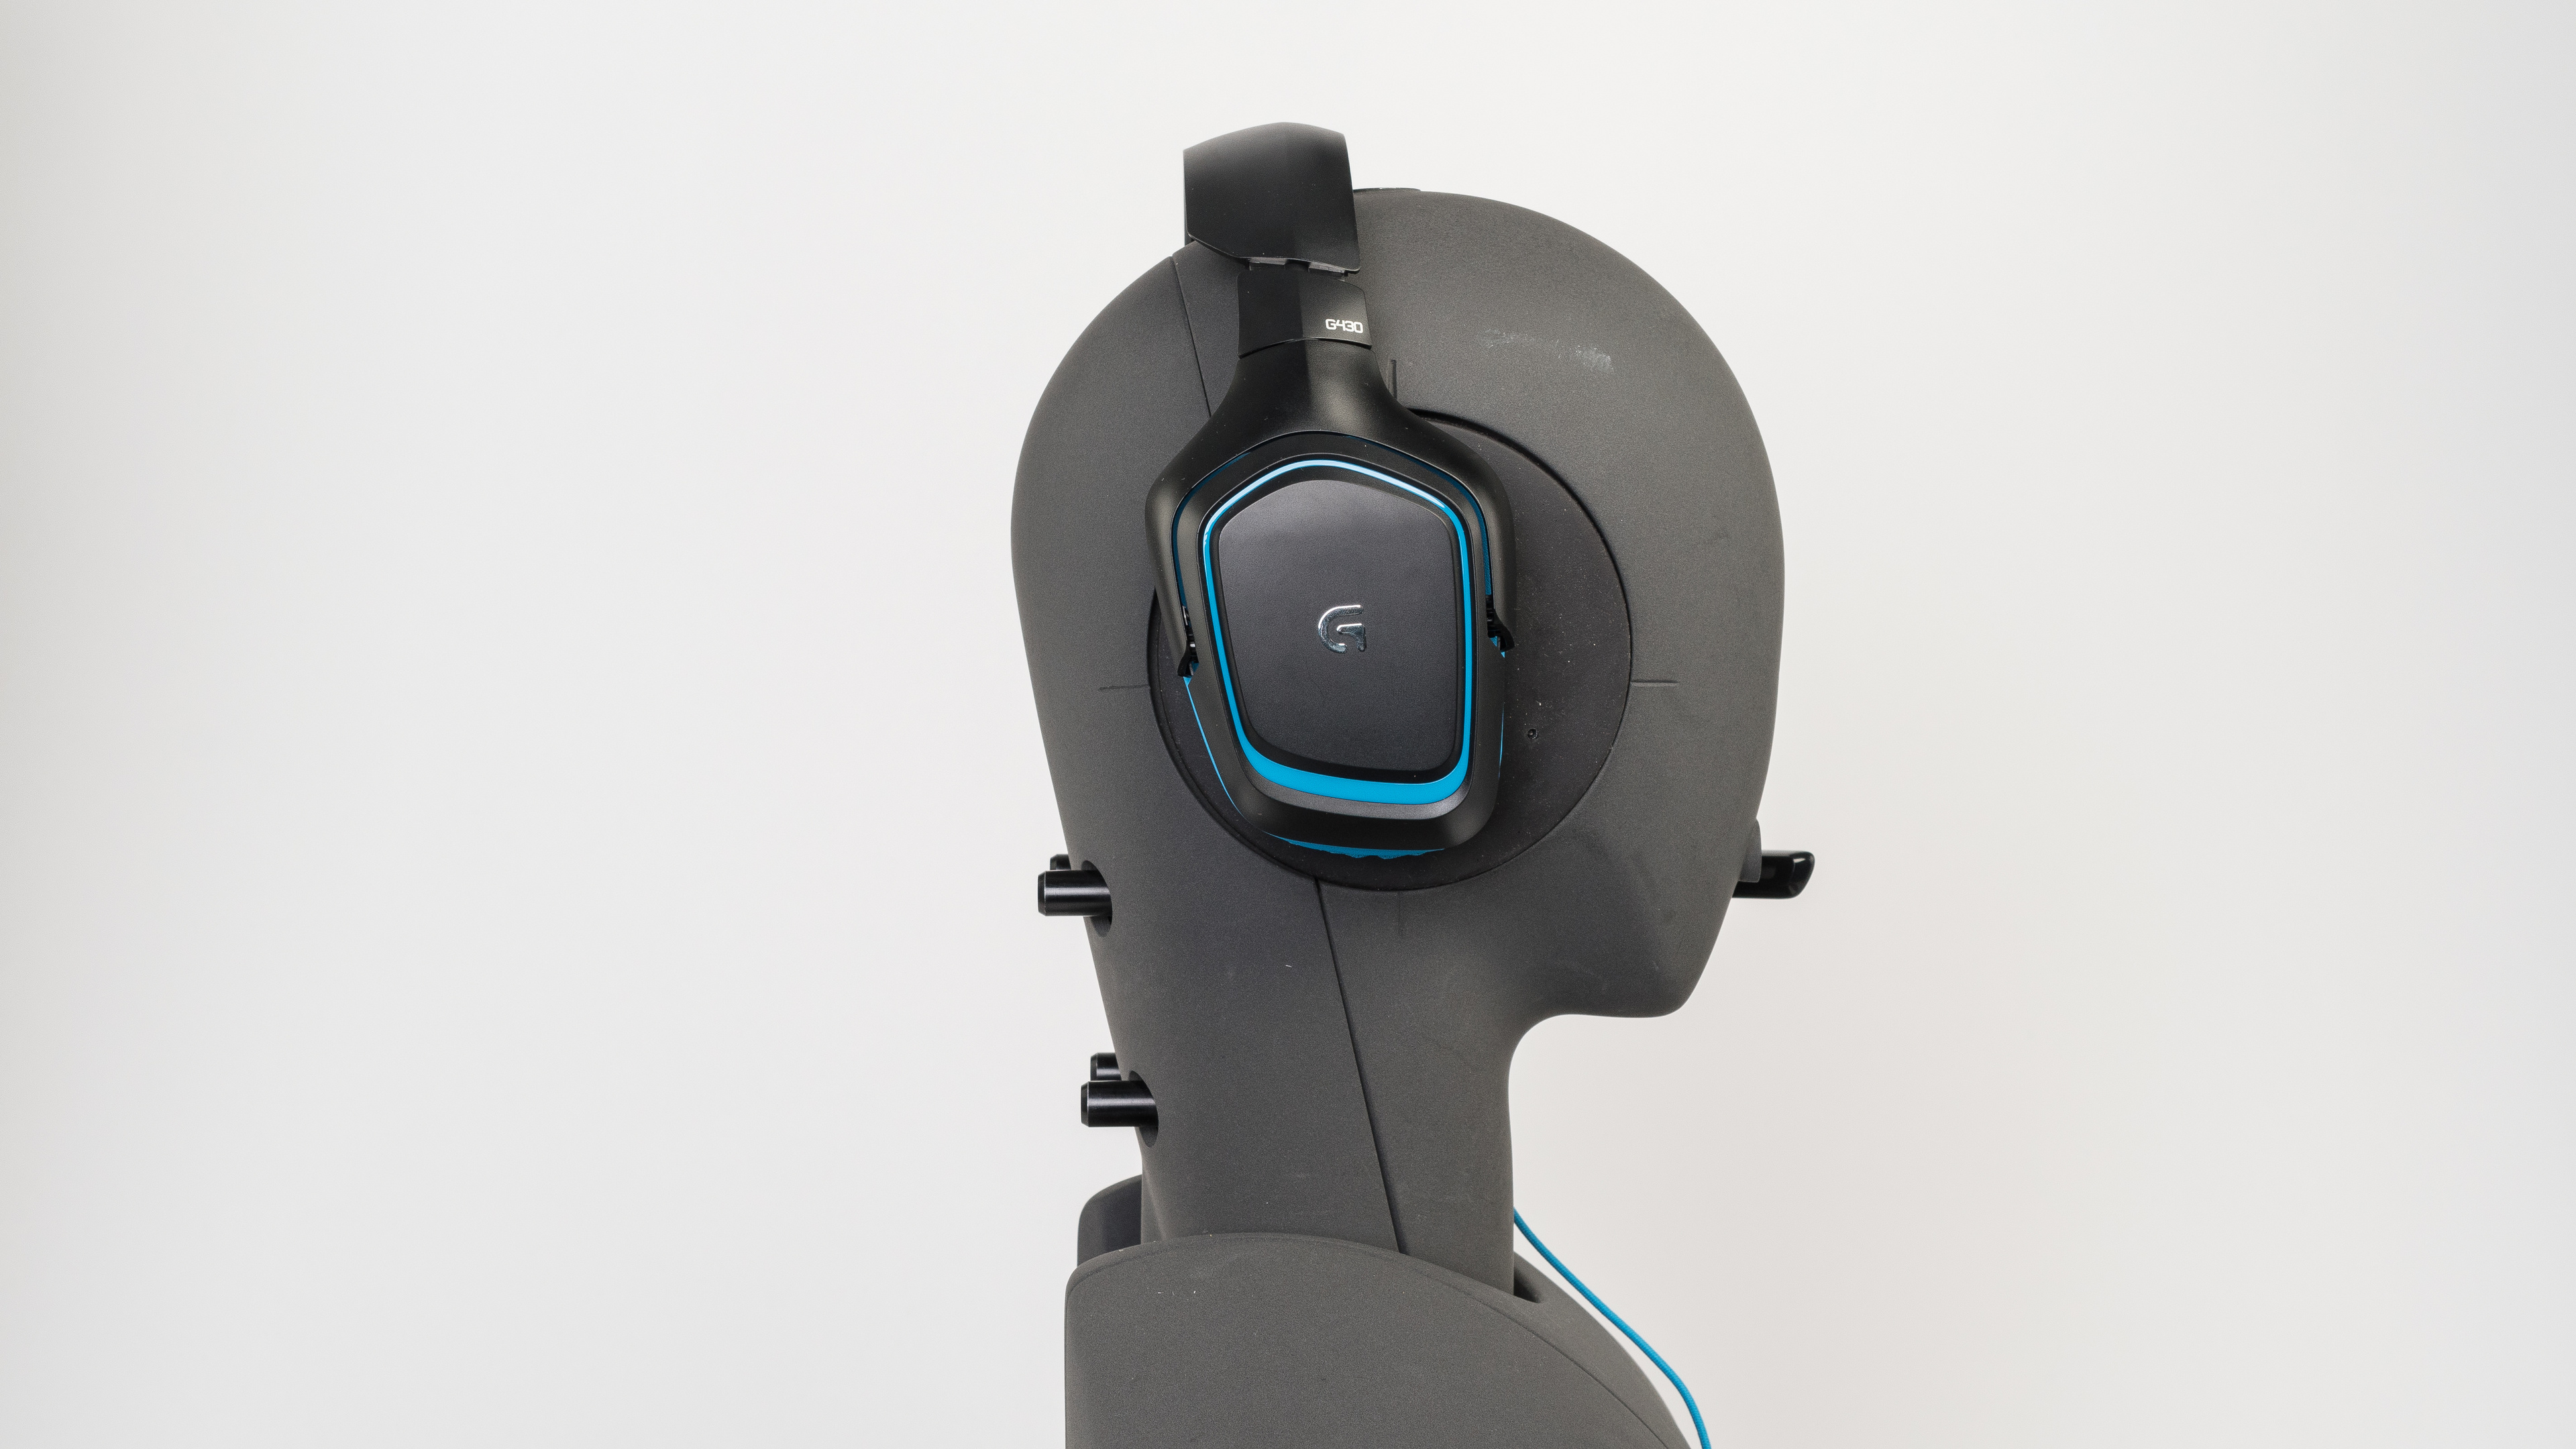 Logitech G430 Angled Picture Logitech G430 Side Picture